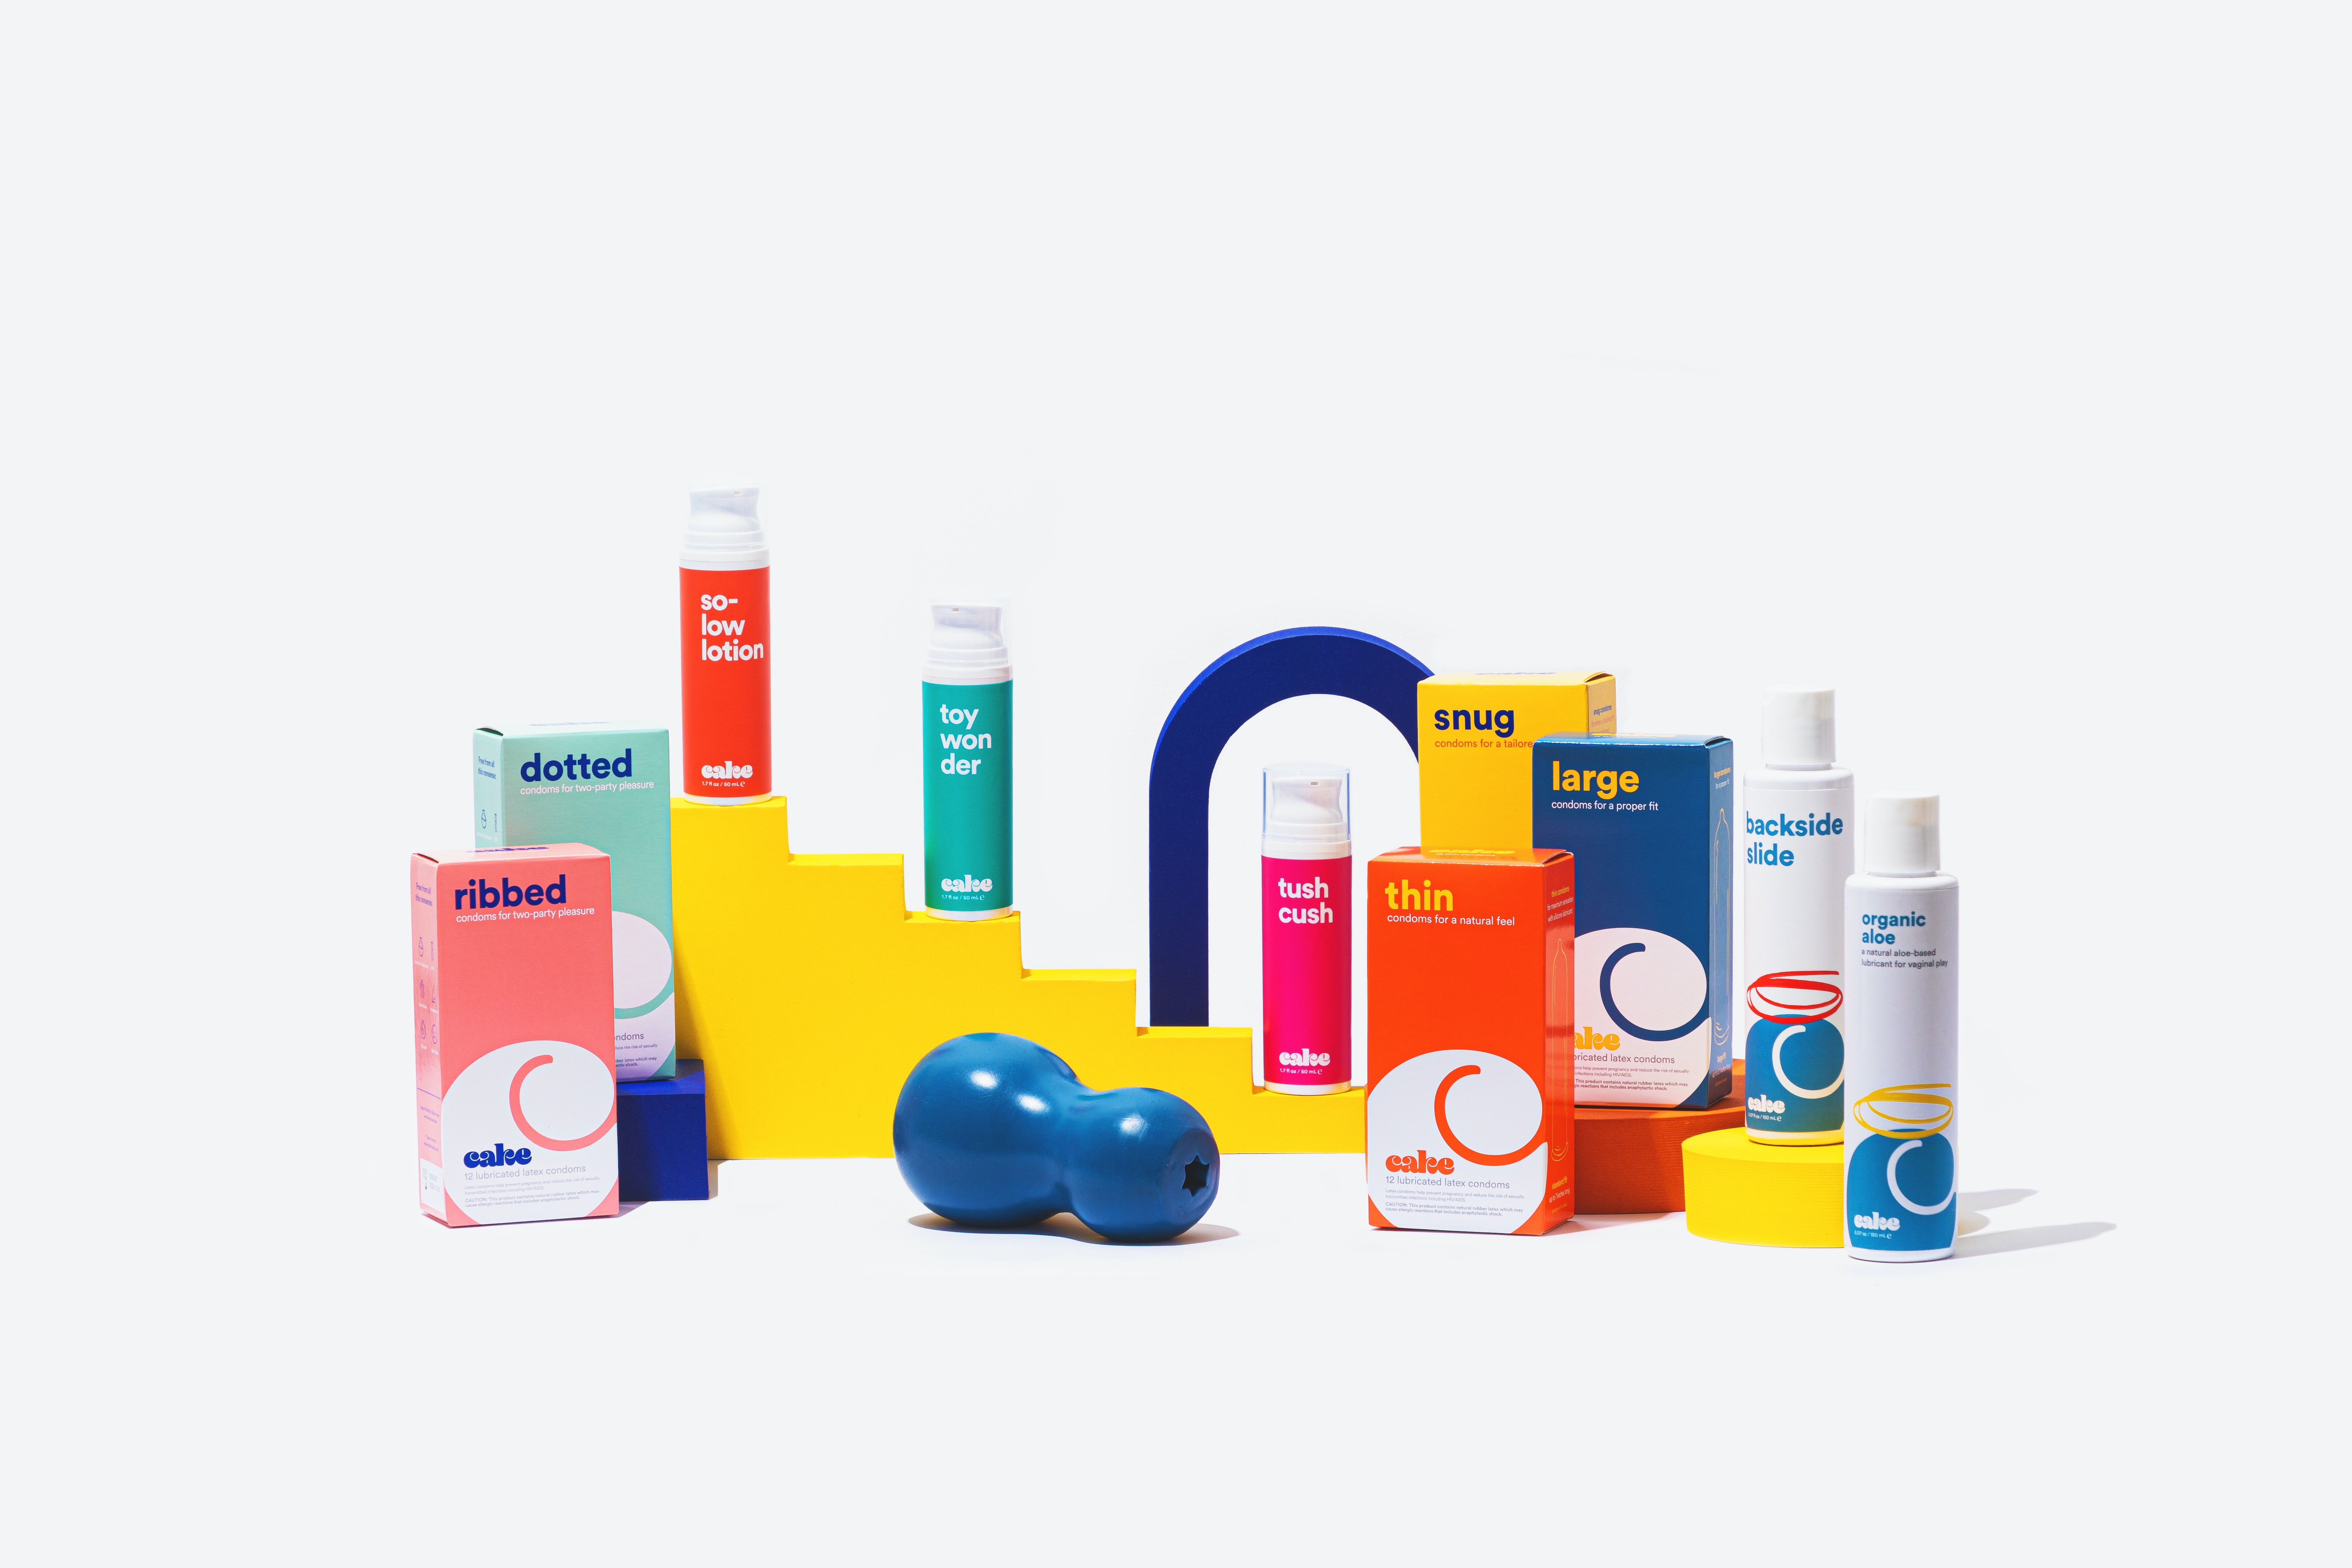 Cake\'s product lineup, which includes a lube designed for sex toys and a personal penis massager. CourtesyCake\'s product lineup, which includes a lube designed for sex toys and a personal penis massager. Courtesy